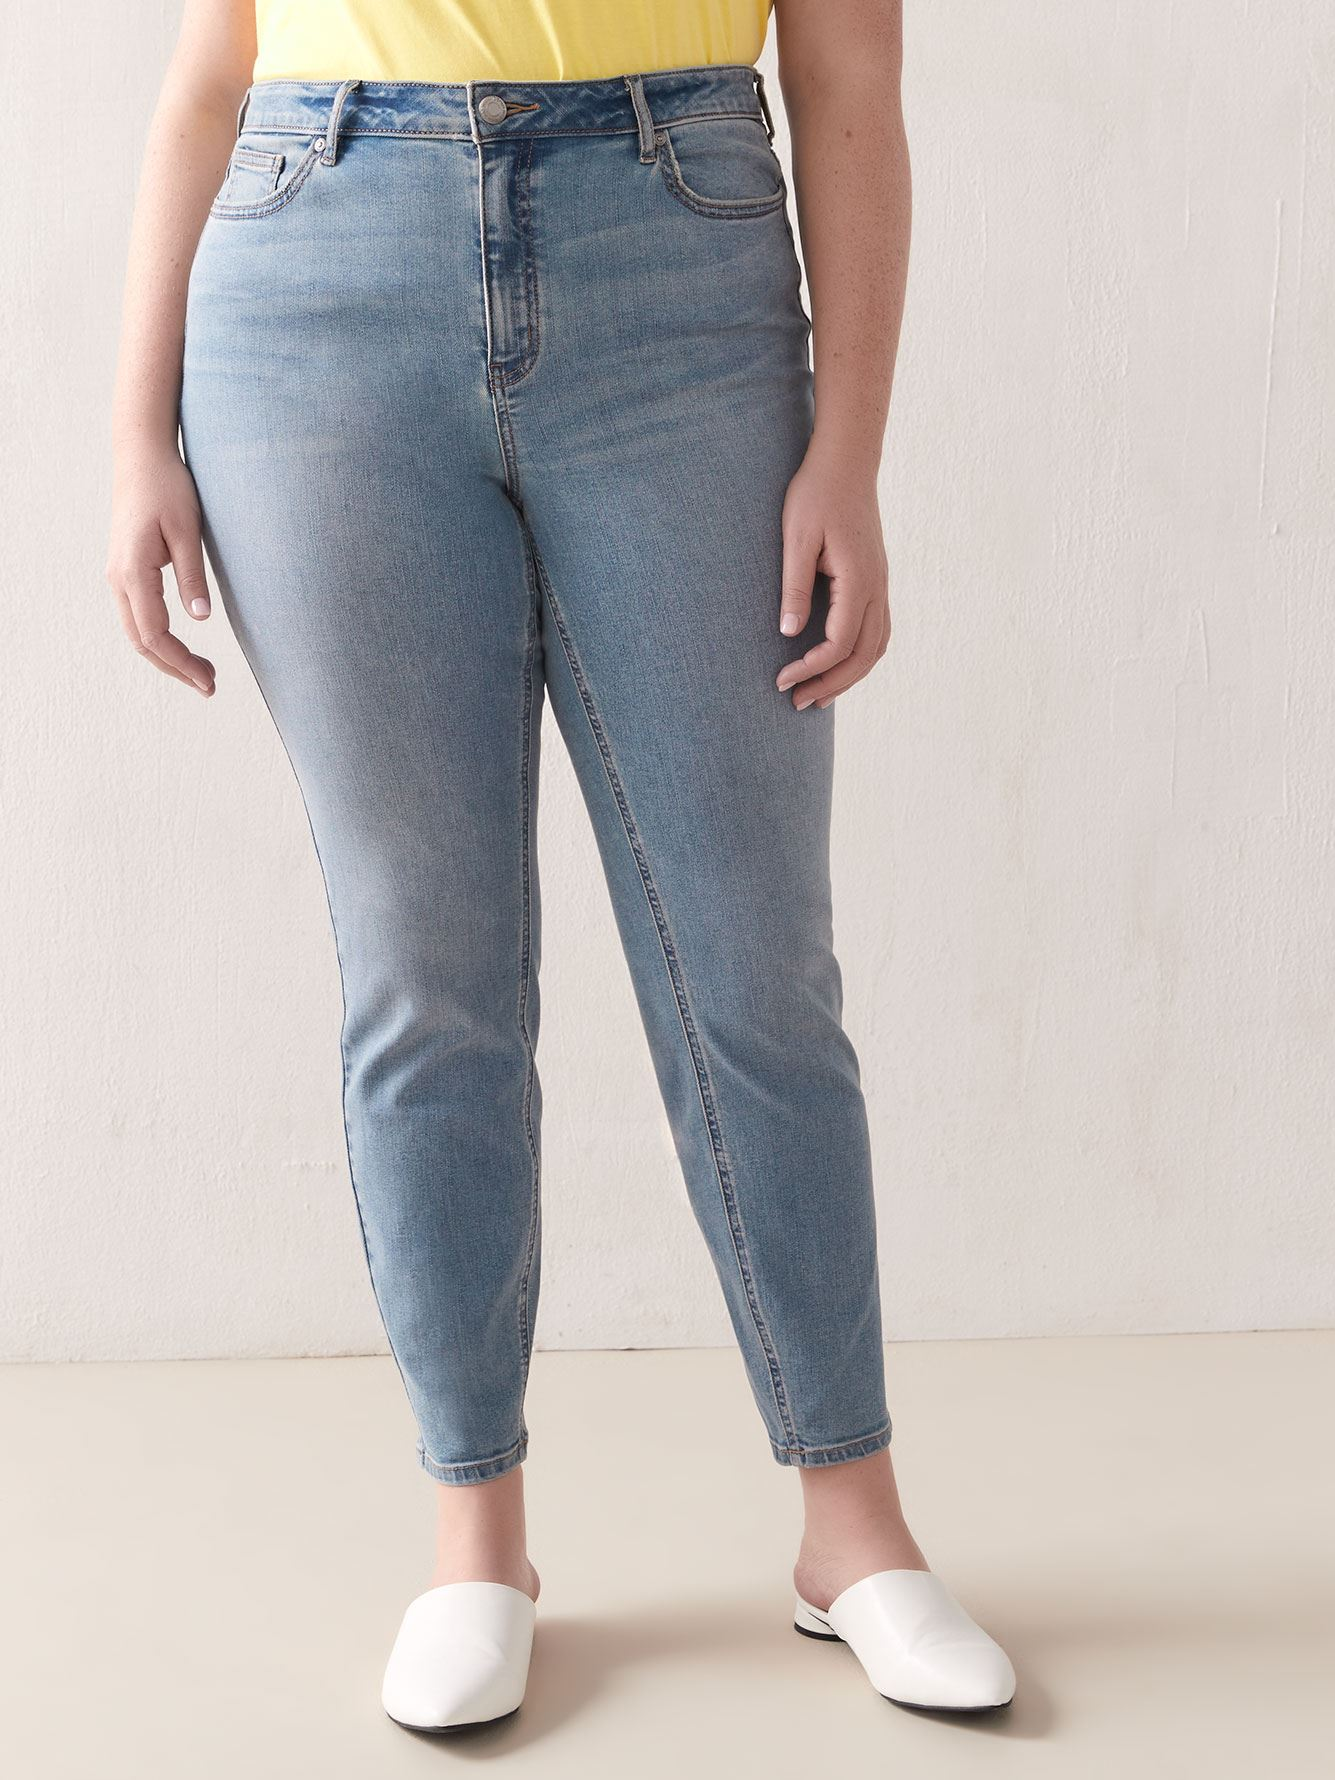 Skinny Light Wash Jean - Addition Elle